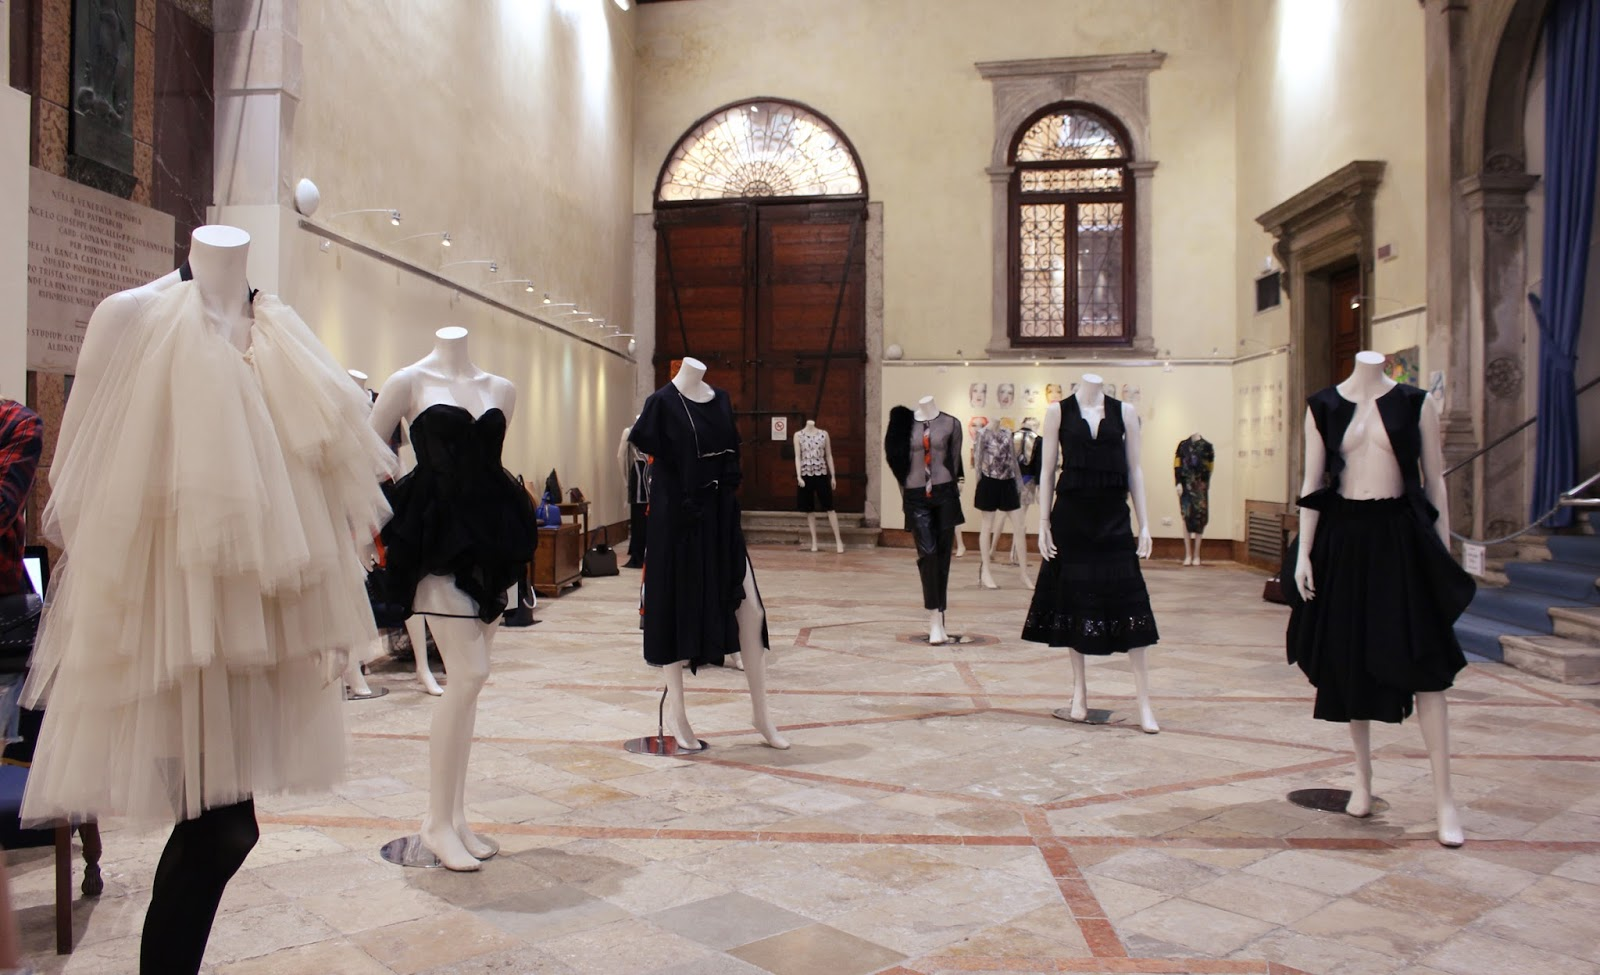 Eniwhere Fashion - Art Talent Fashion Designers - Venezia